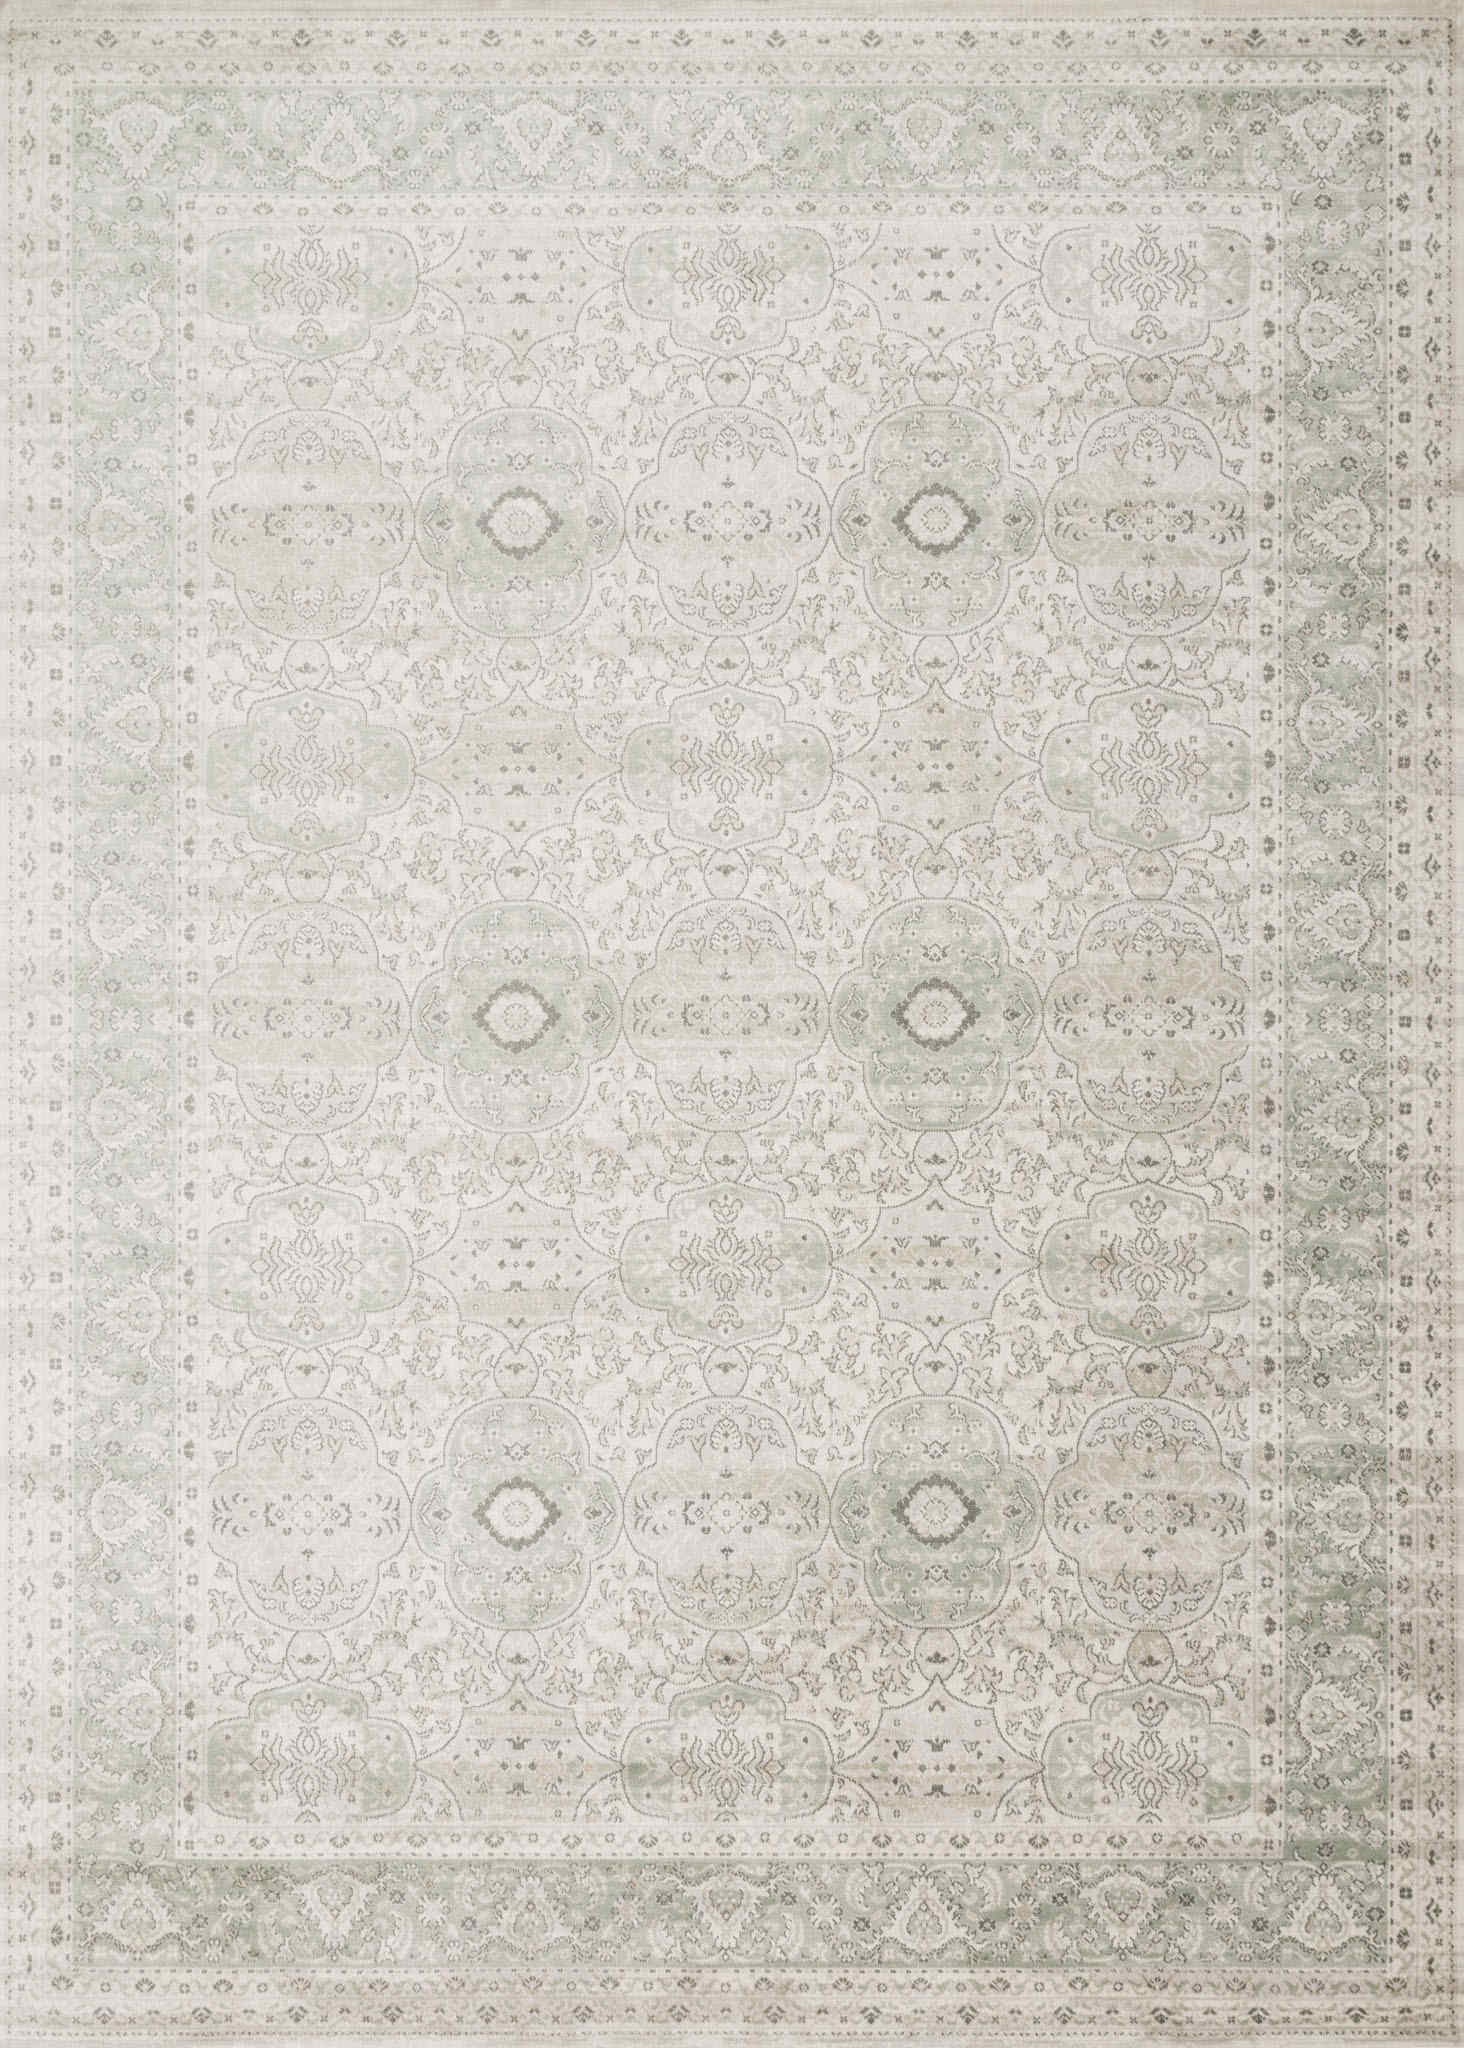 Loloi Griffin Transitional Rugs Gf-07